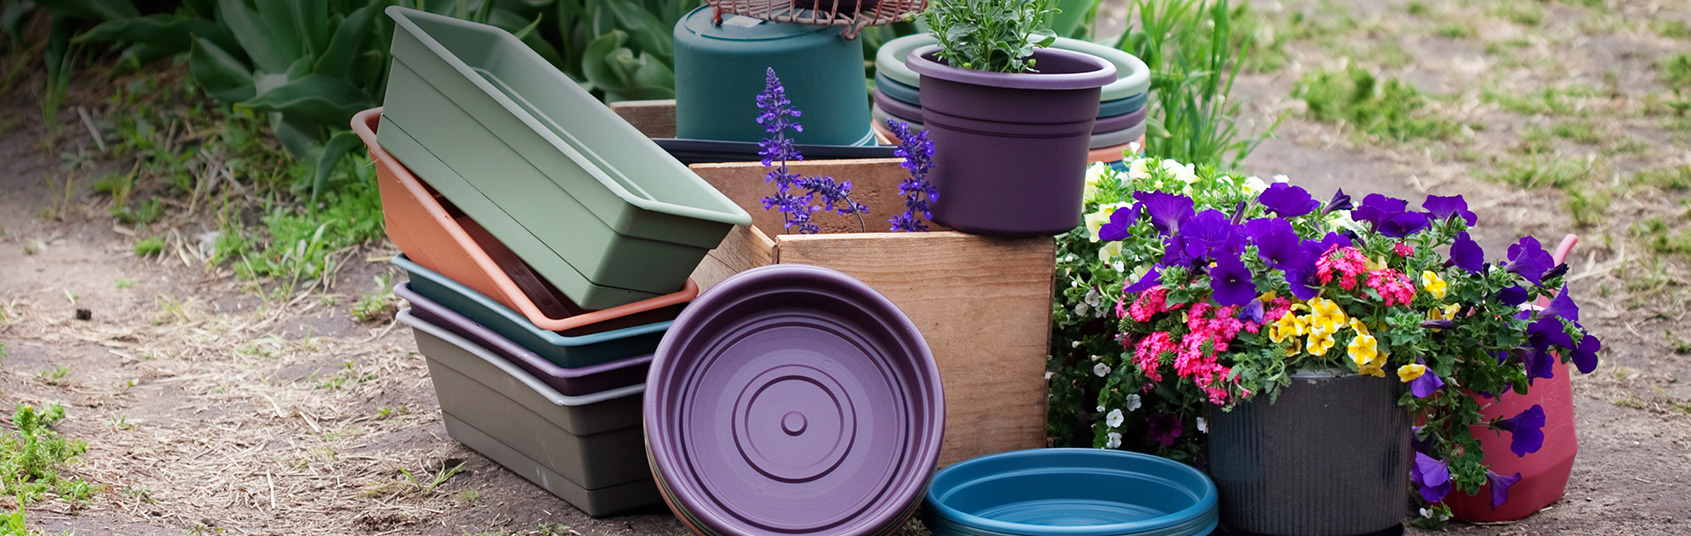 gardening pots planters u0026 accessories amazon com